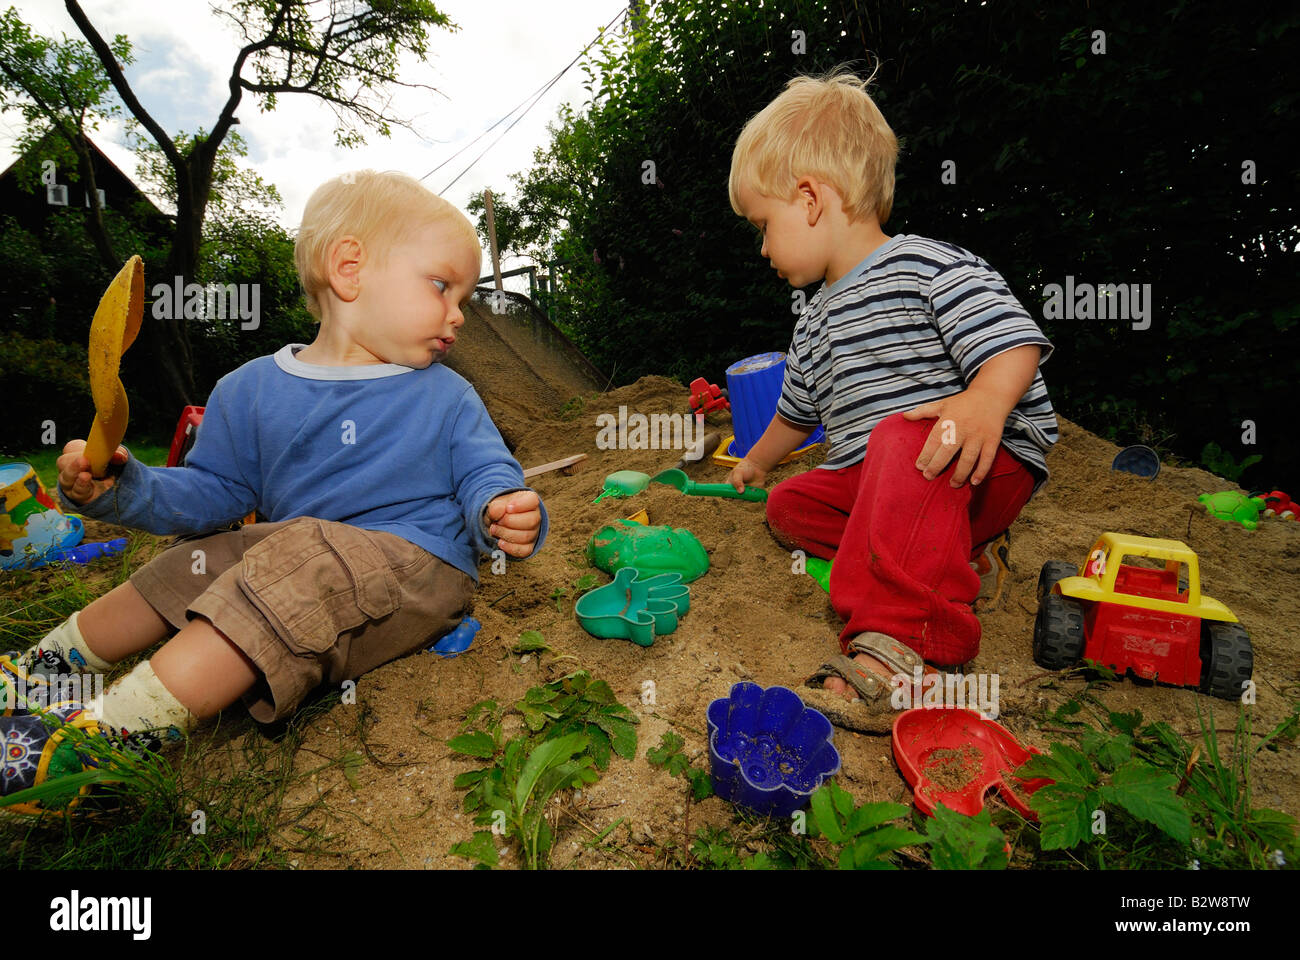 Baby Babys Children Boy Boys In Sand Pit Playing Toys Playground 1 2